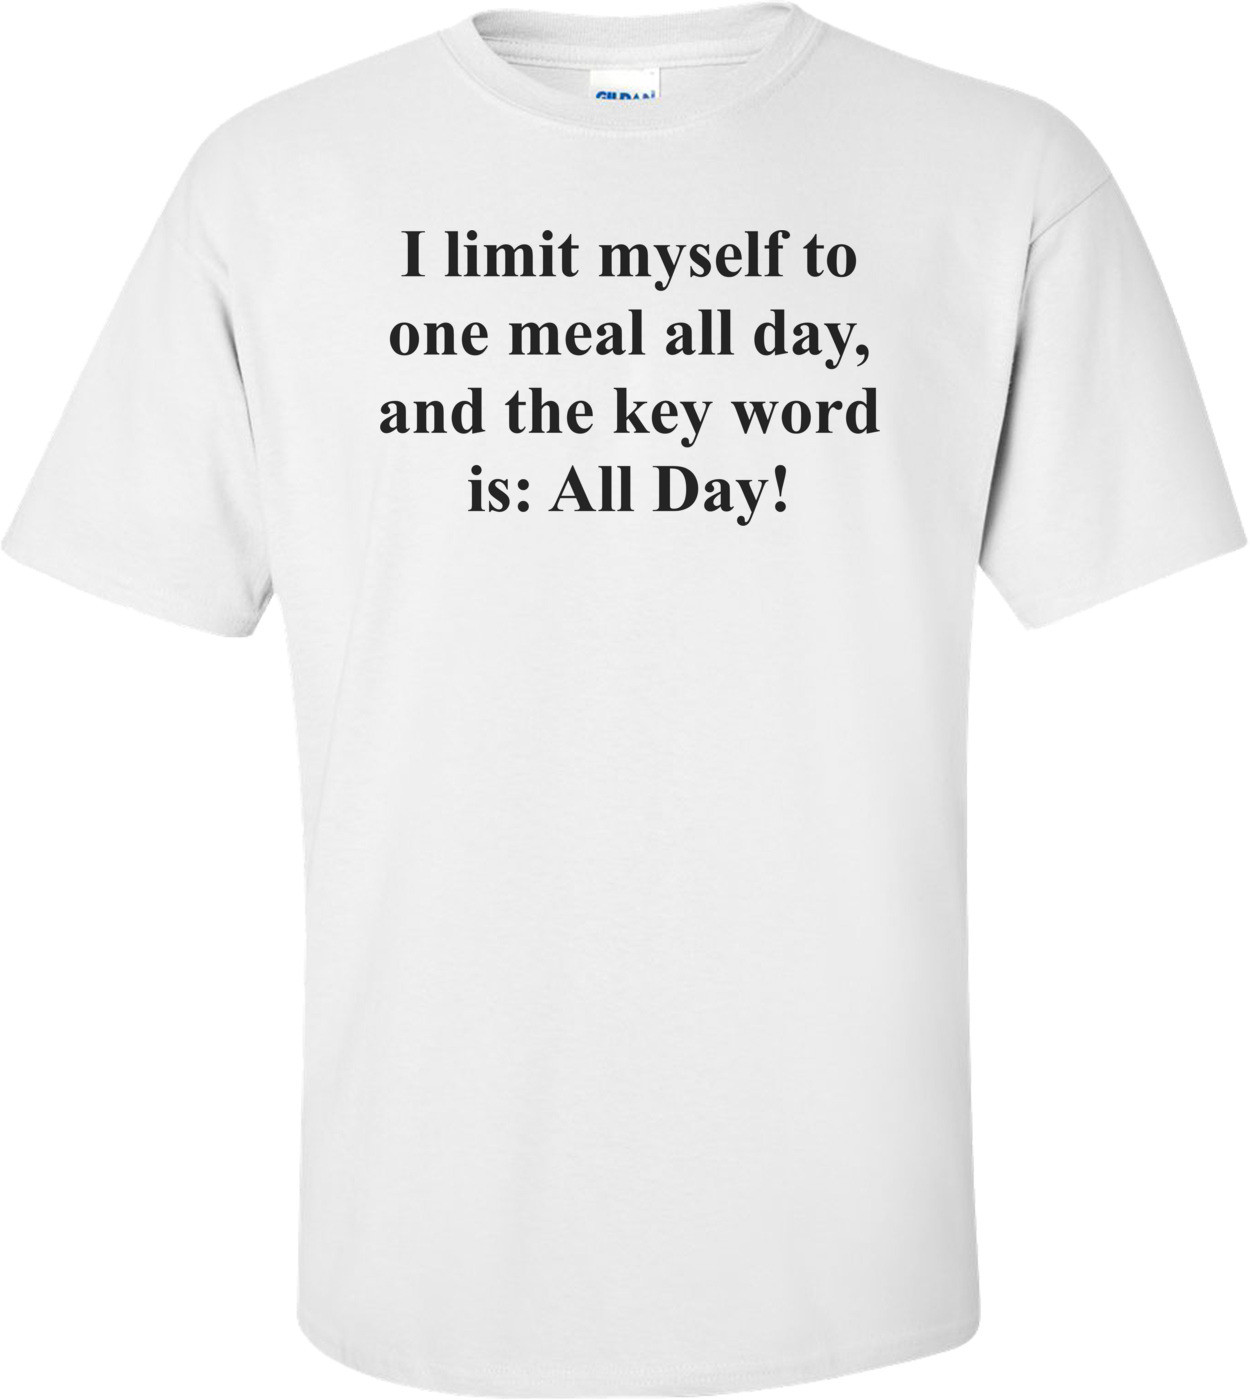 I limit myself to one meal all day, and the key word is: All Day! Shirt